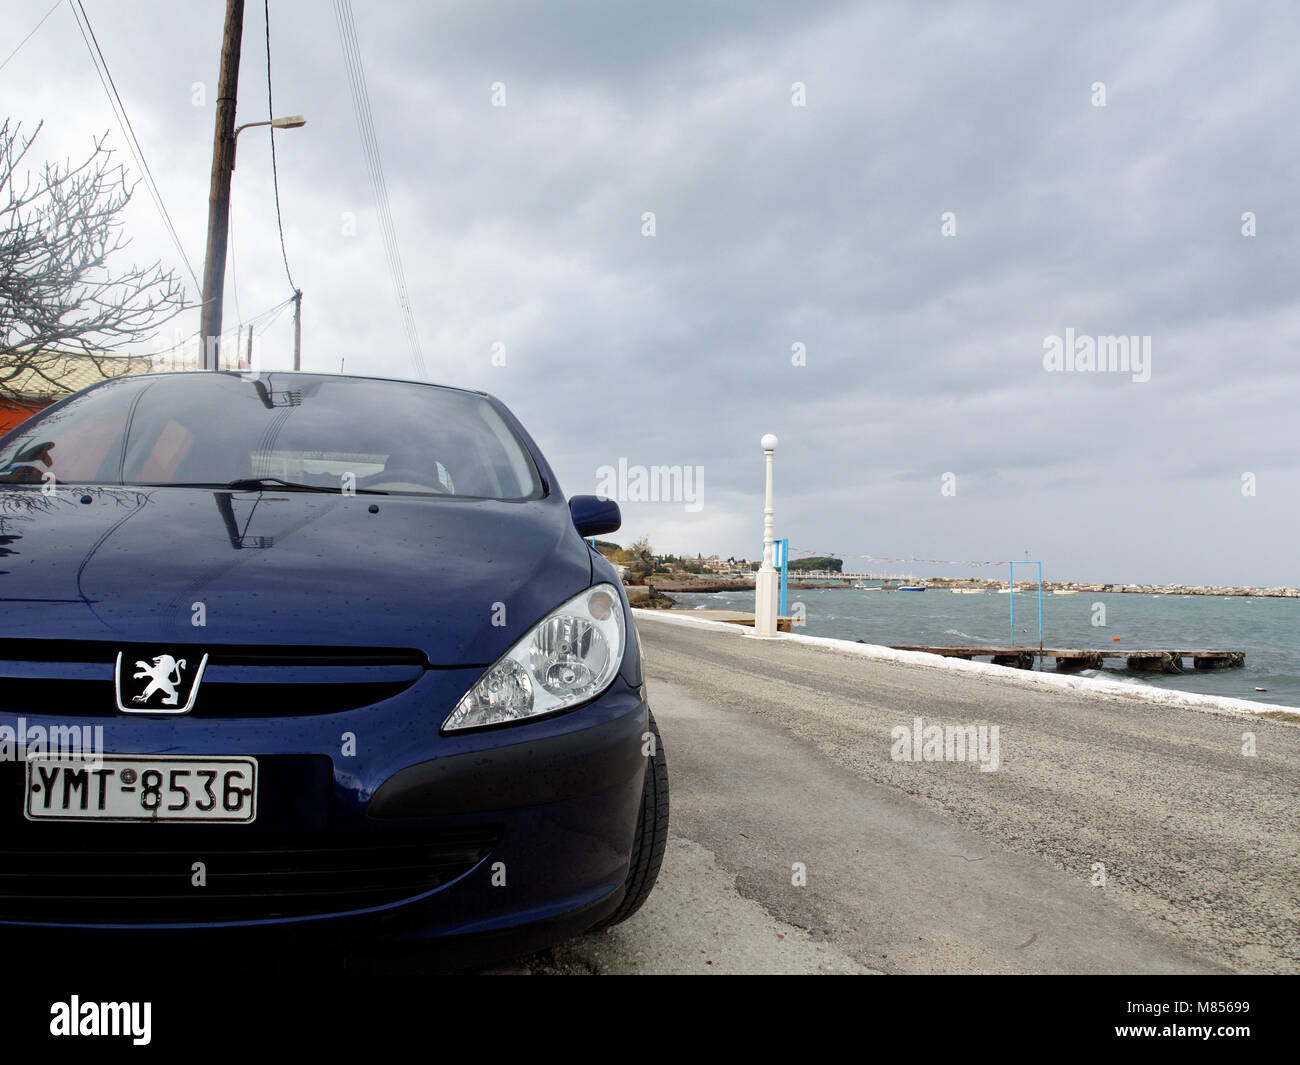 peugeot 307 stockfotos peugeot 307 bilder alamy. Black Bedroom Furniture Sets. Home Design Ideas